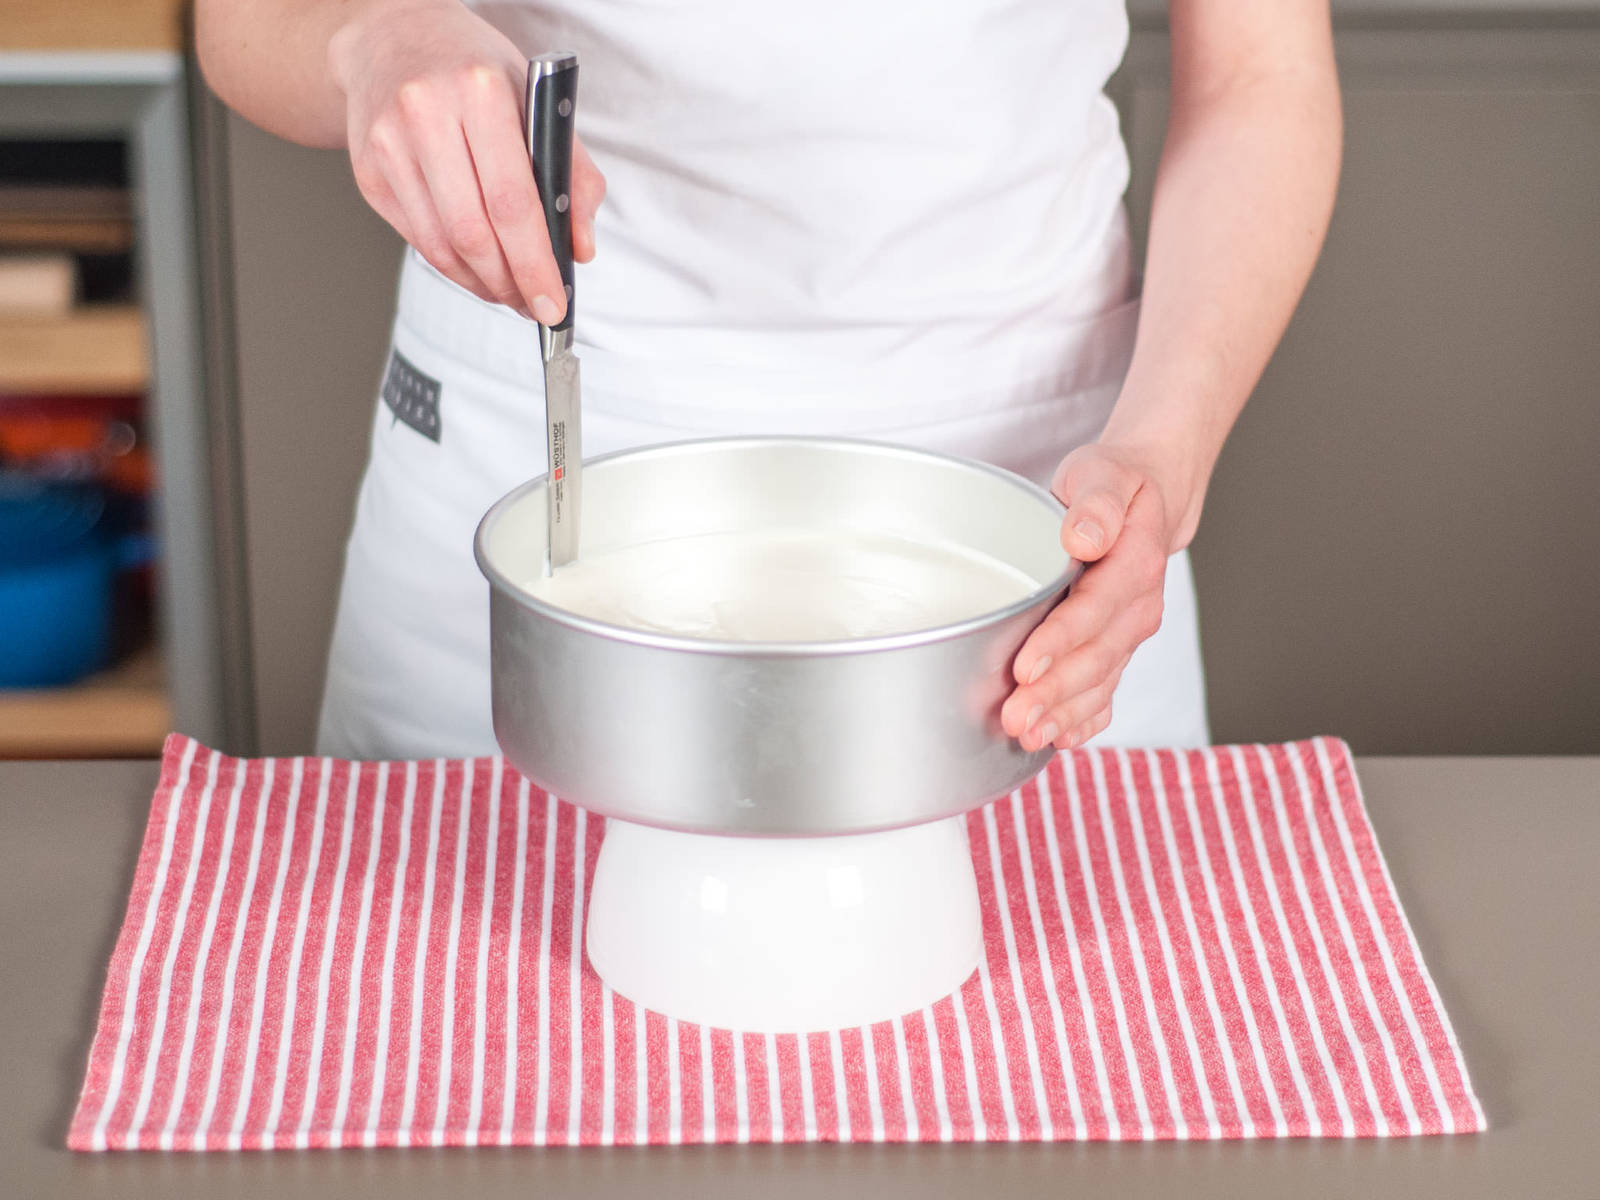 Carefully run knife around the edges of the baking form. Remove cake and transfer to a cake platter.